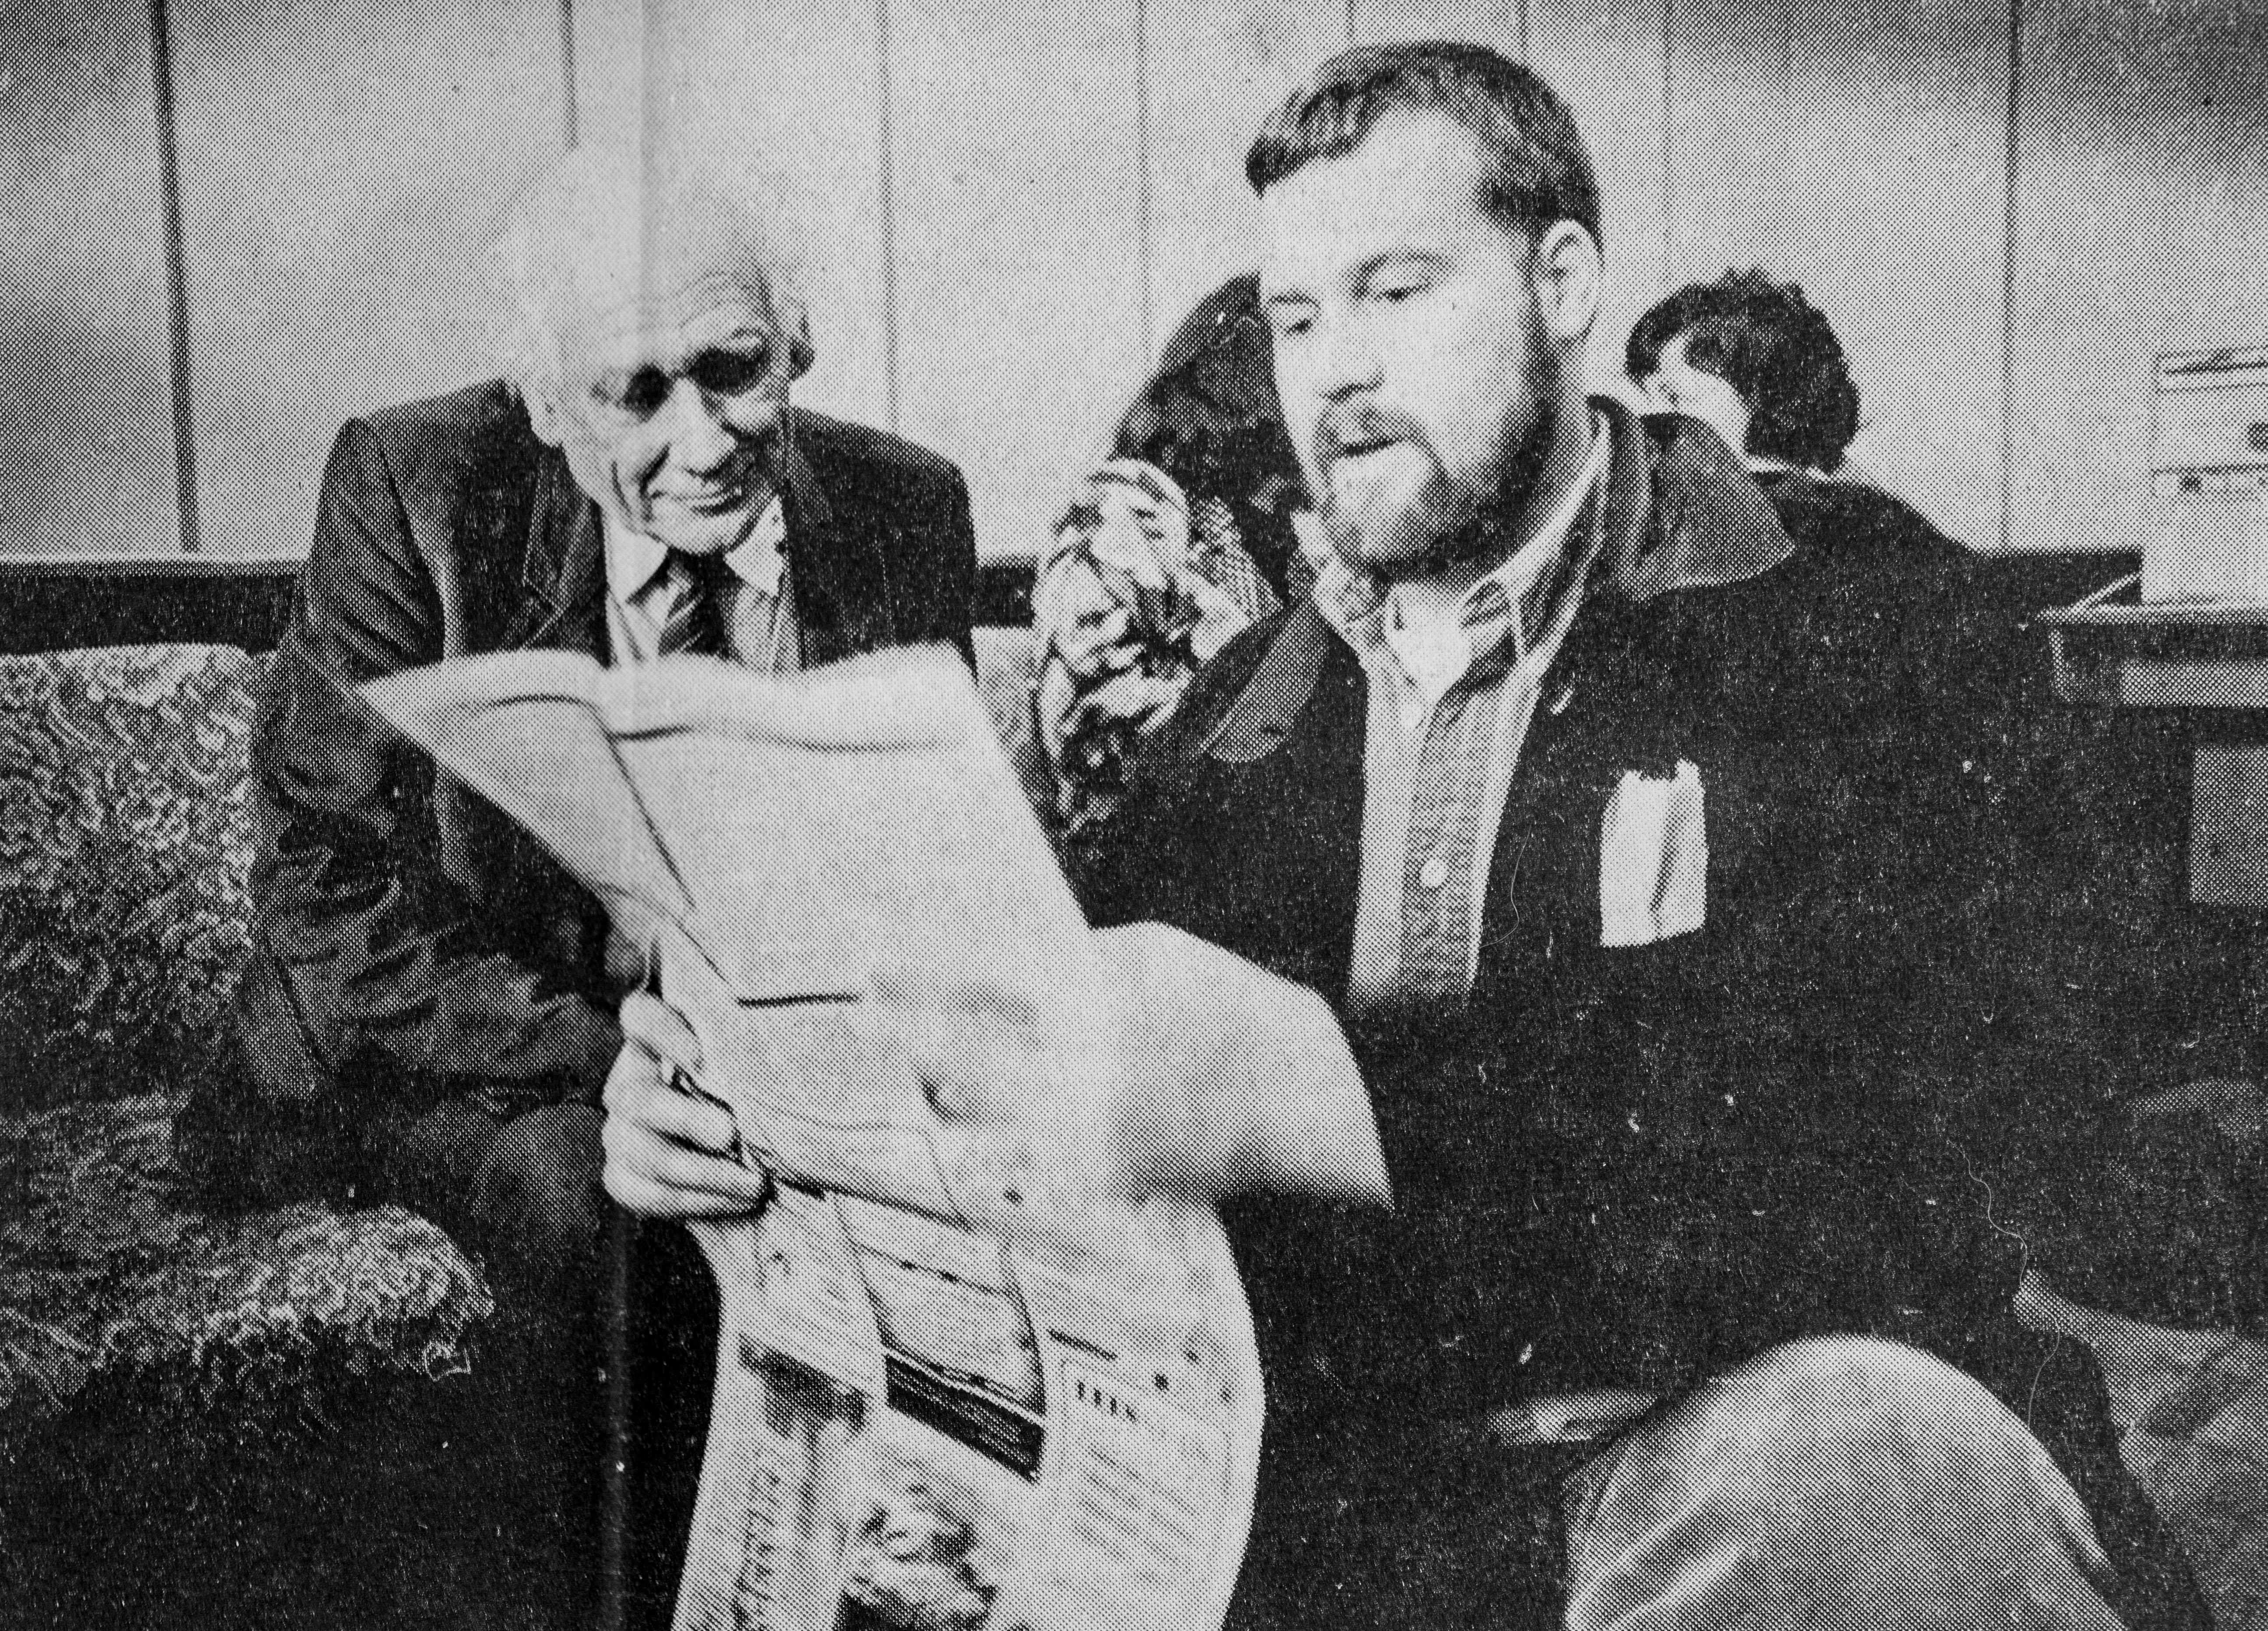 CNET reporter Stephen Shankland shows a copy of the newspaper where he worked in 1995, the Los Alamos Monitor, to Russian nuclear weapons physicist Viktor Adamsky. Adamsky helped design the most powerful nuclear weapon ever exploded, the Tsar Bomba from 1961.